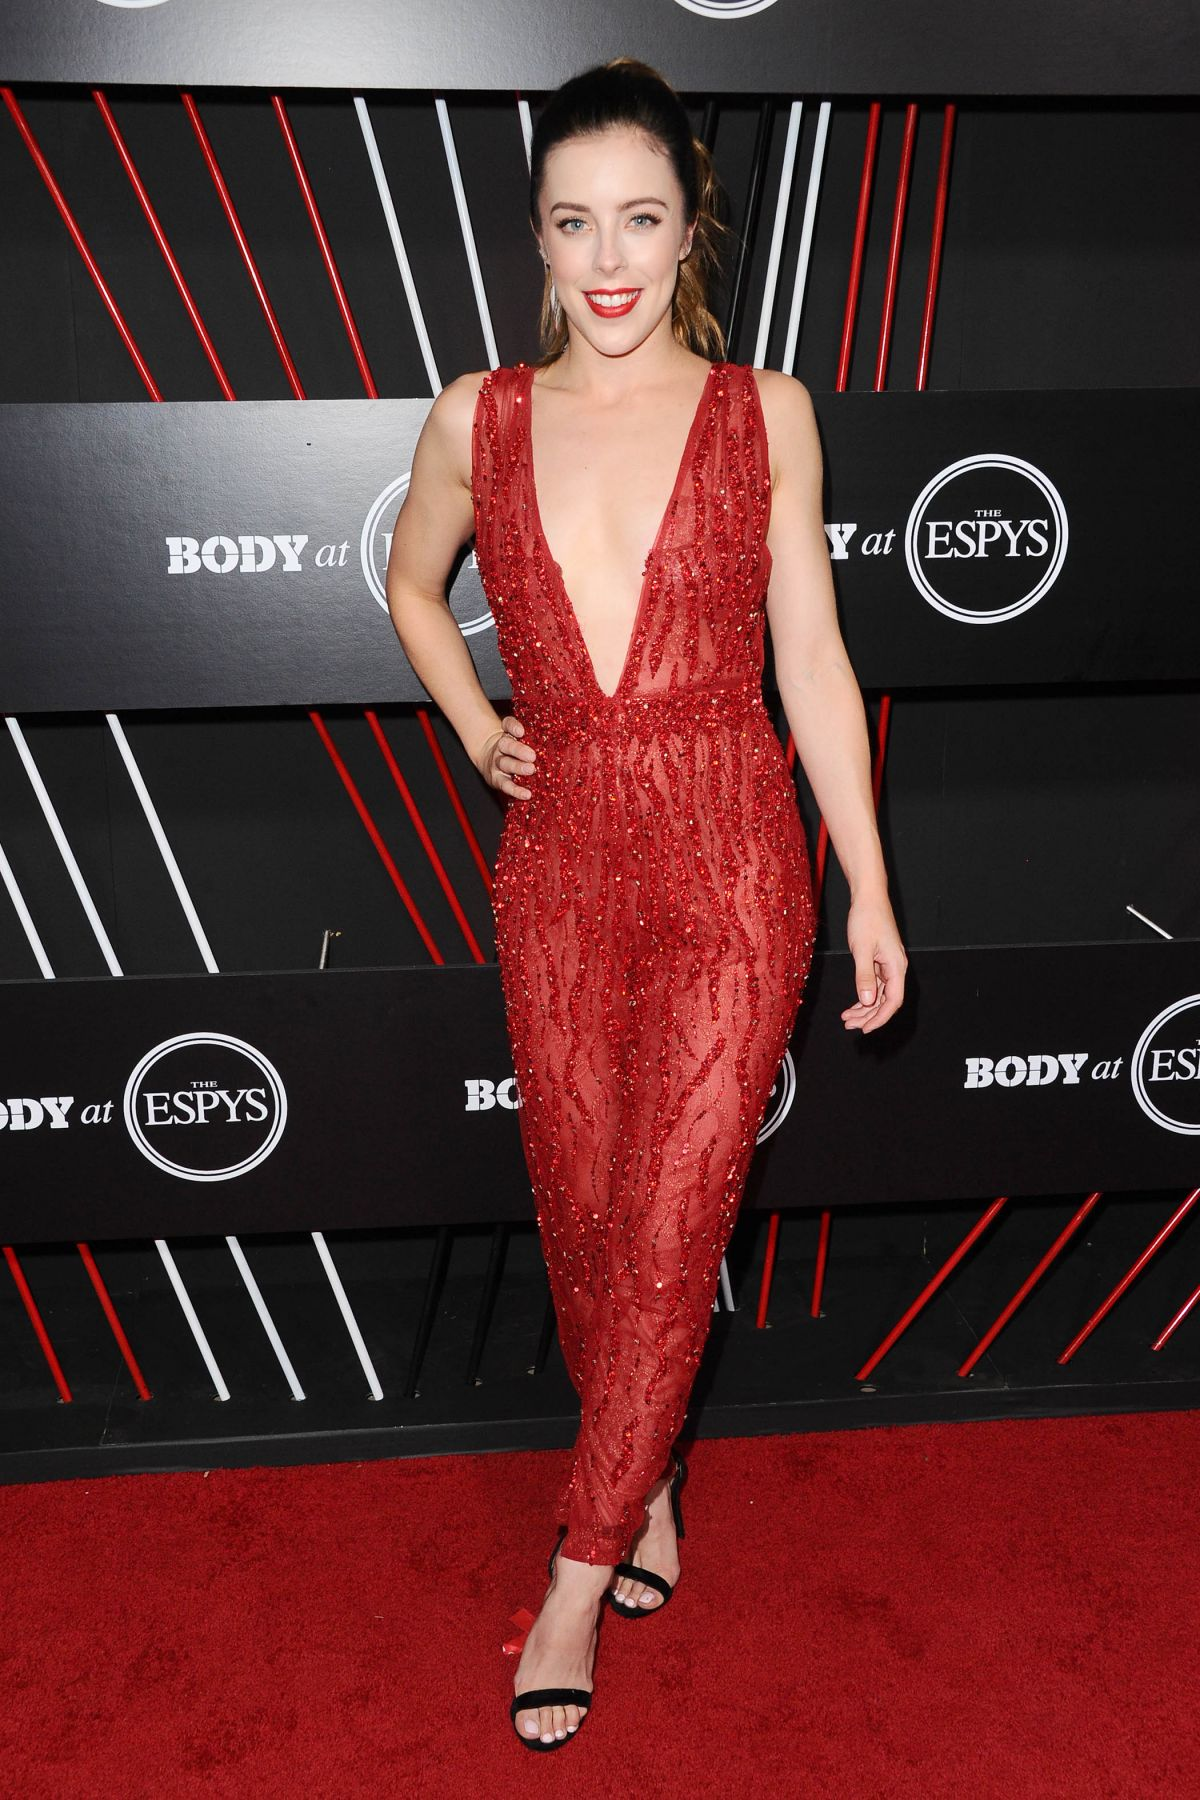 ASHLEY WAGNER at Body at Espys Party in Hollywood 07/11 ...